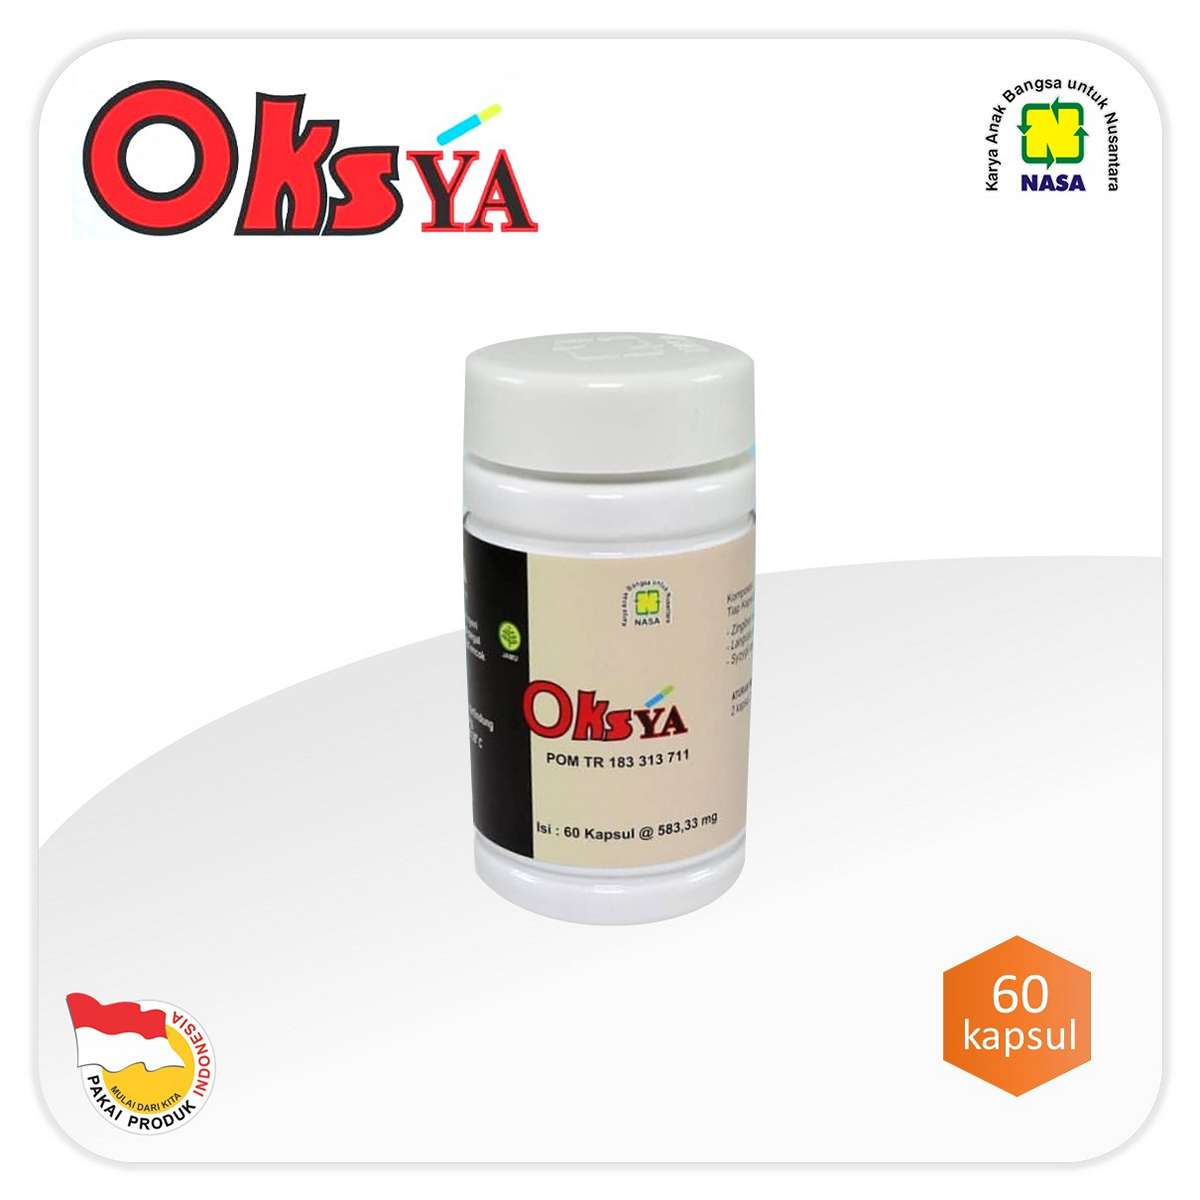 OKSYA NASA Herbal